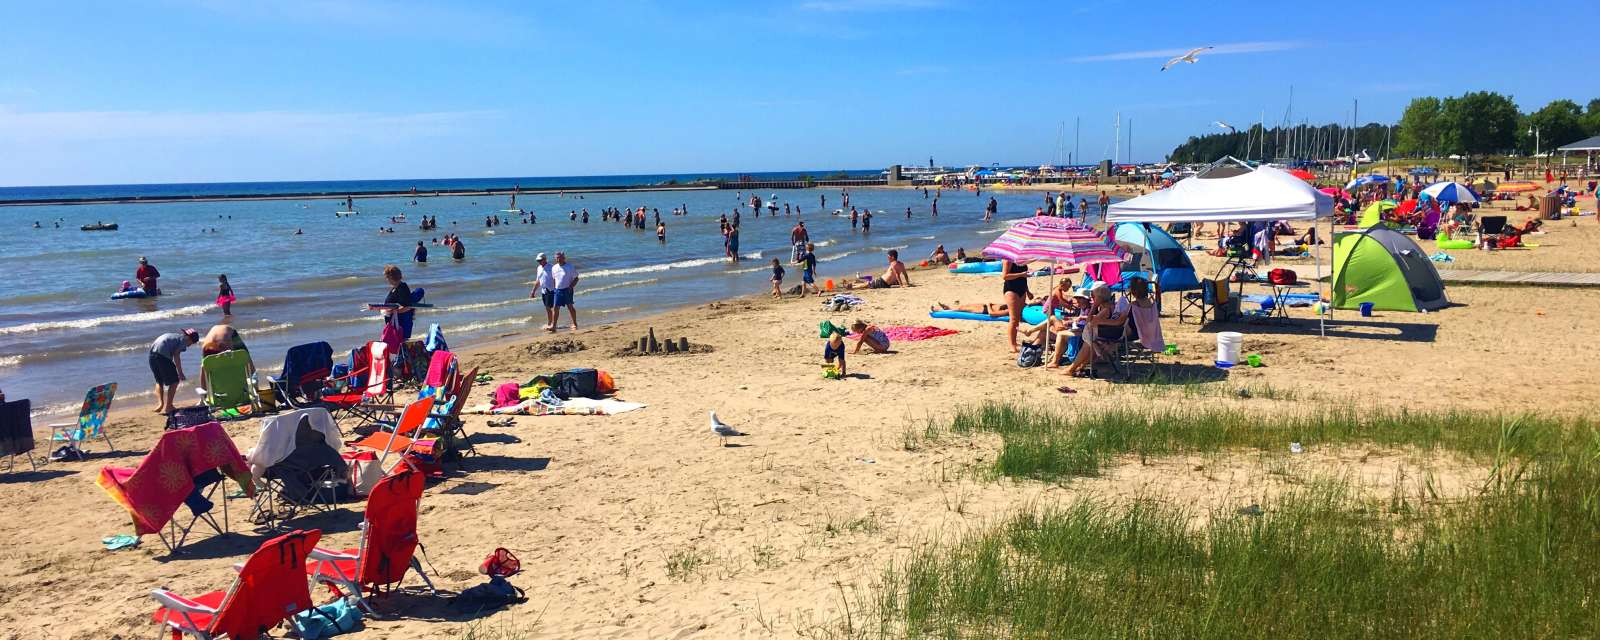 Things to do in Saugeen Shores, Port Elgin and Southampton